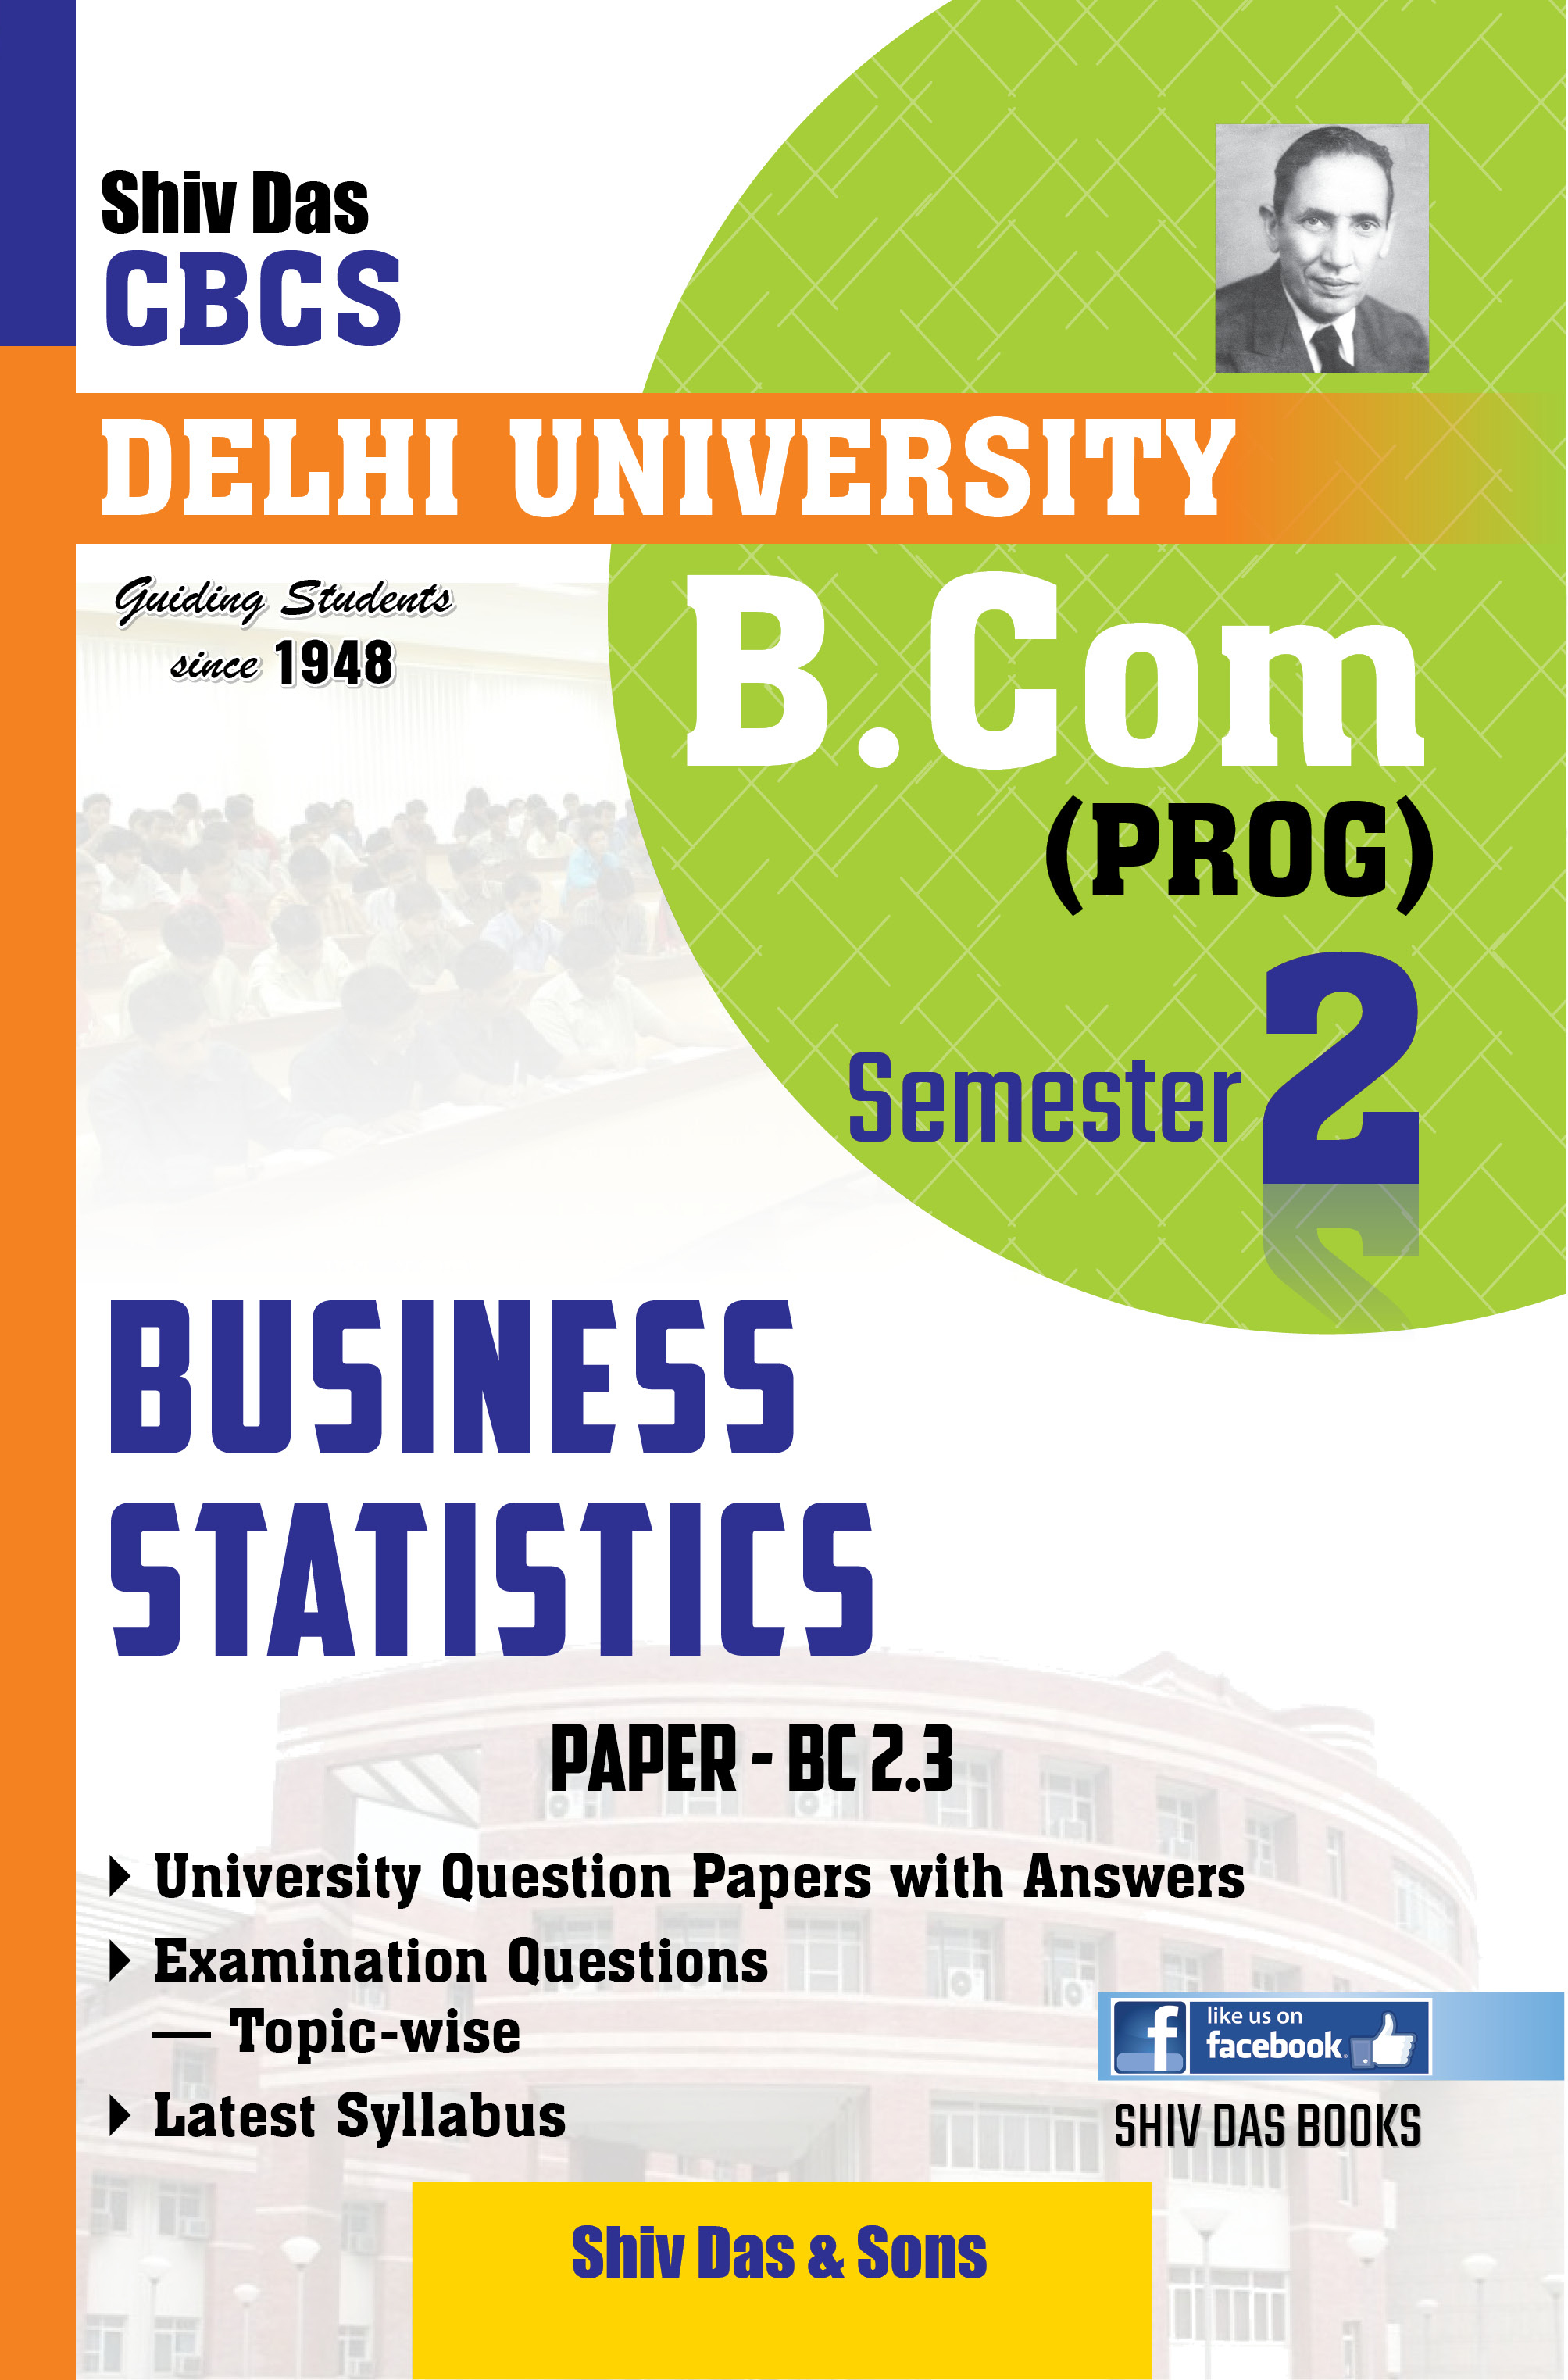 Business Statistics for B.Com Prog Semester-2 for Delhi University by Shiv Das